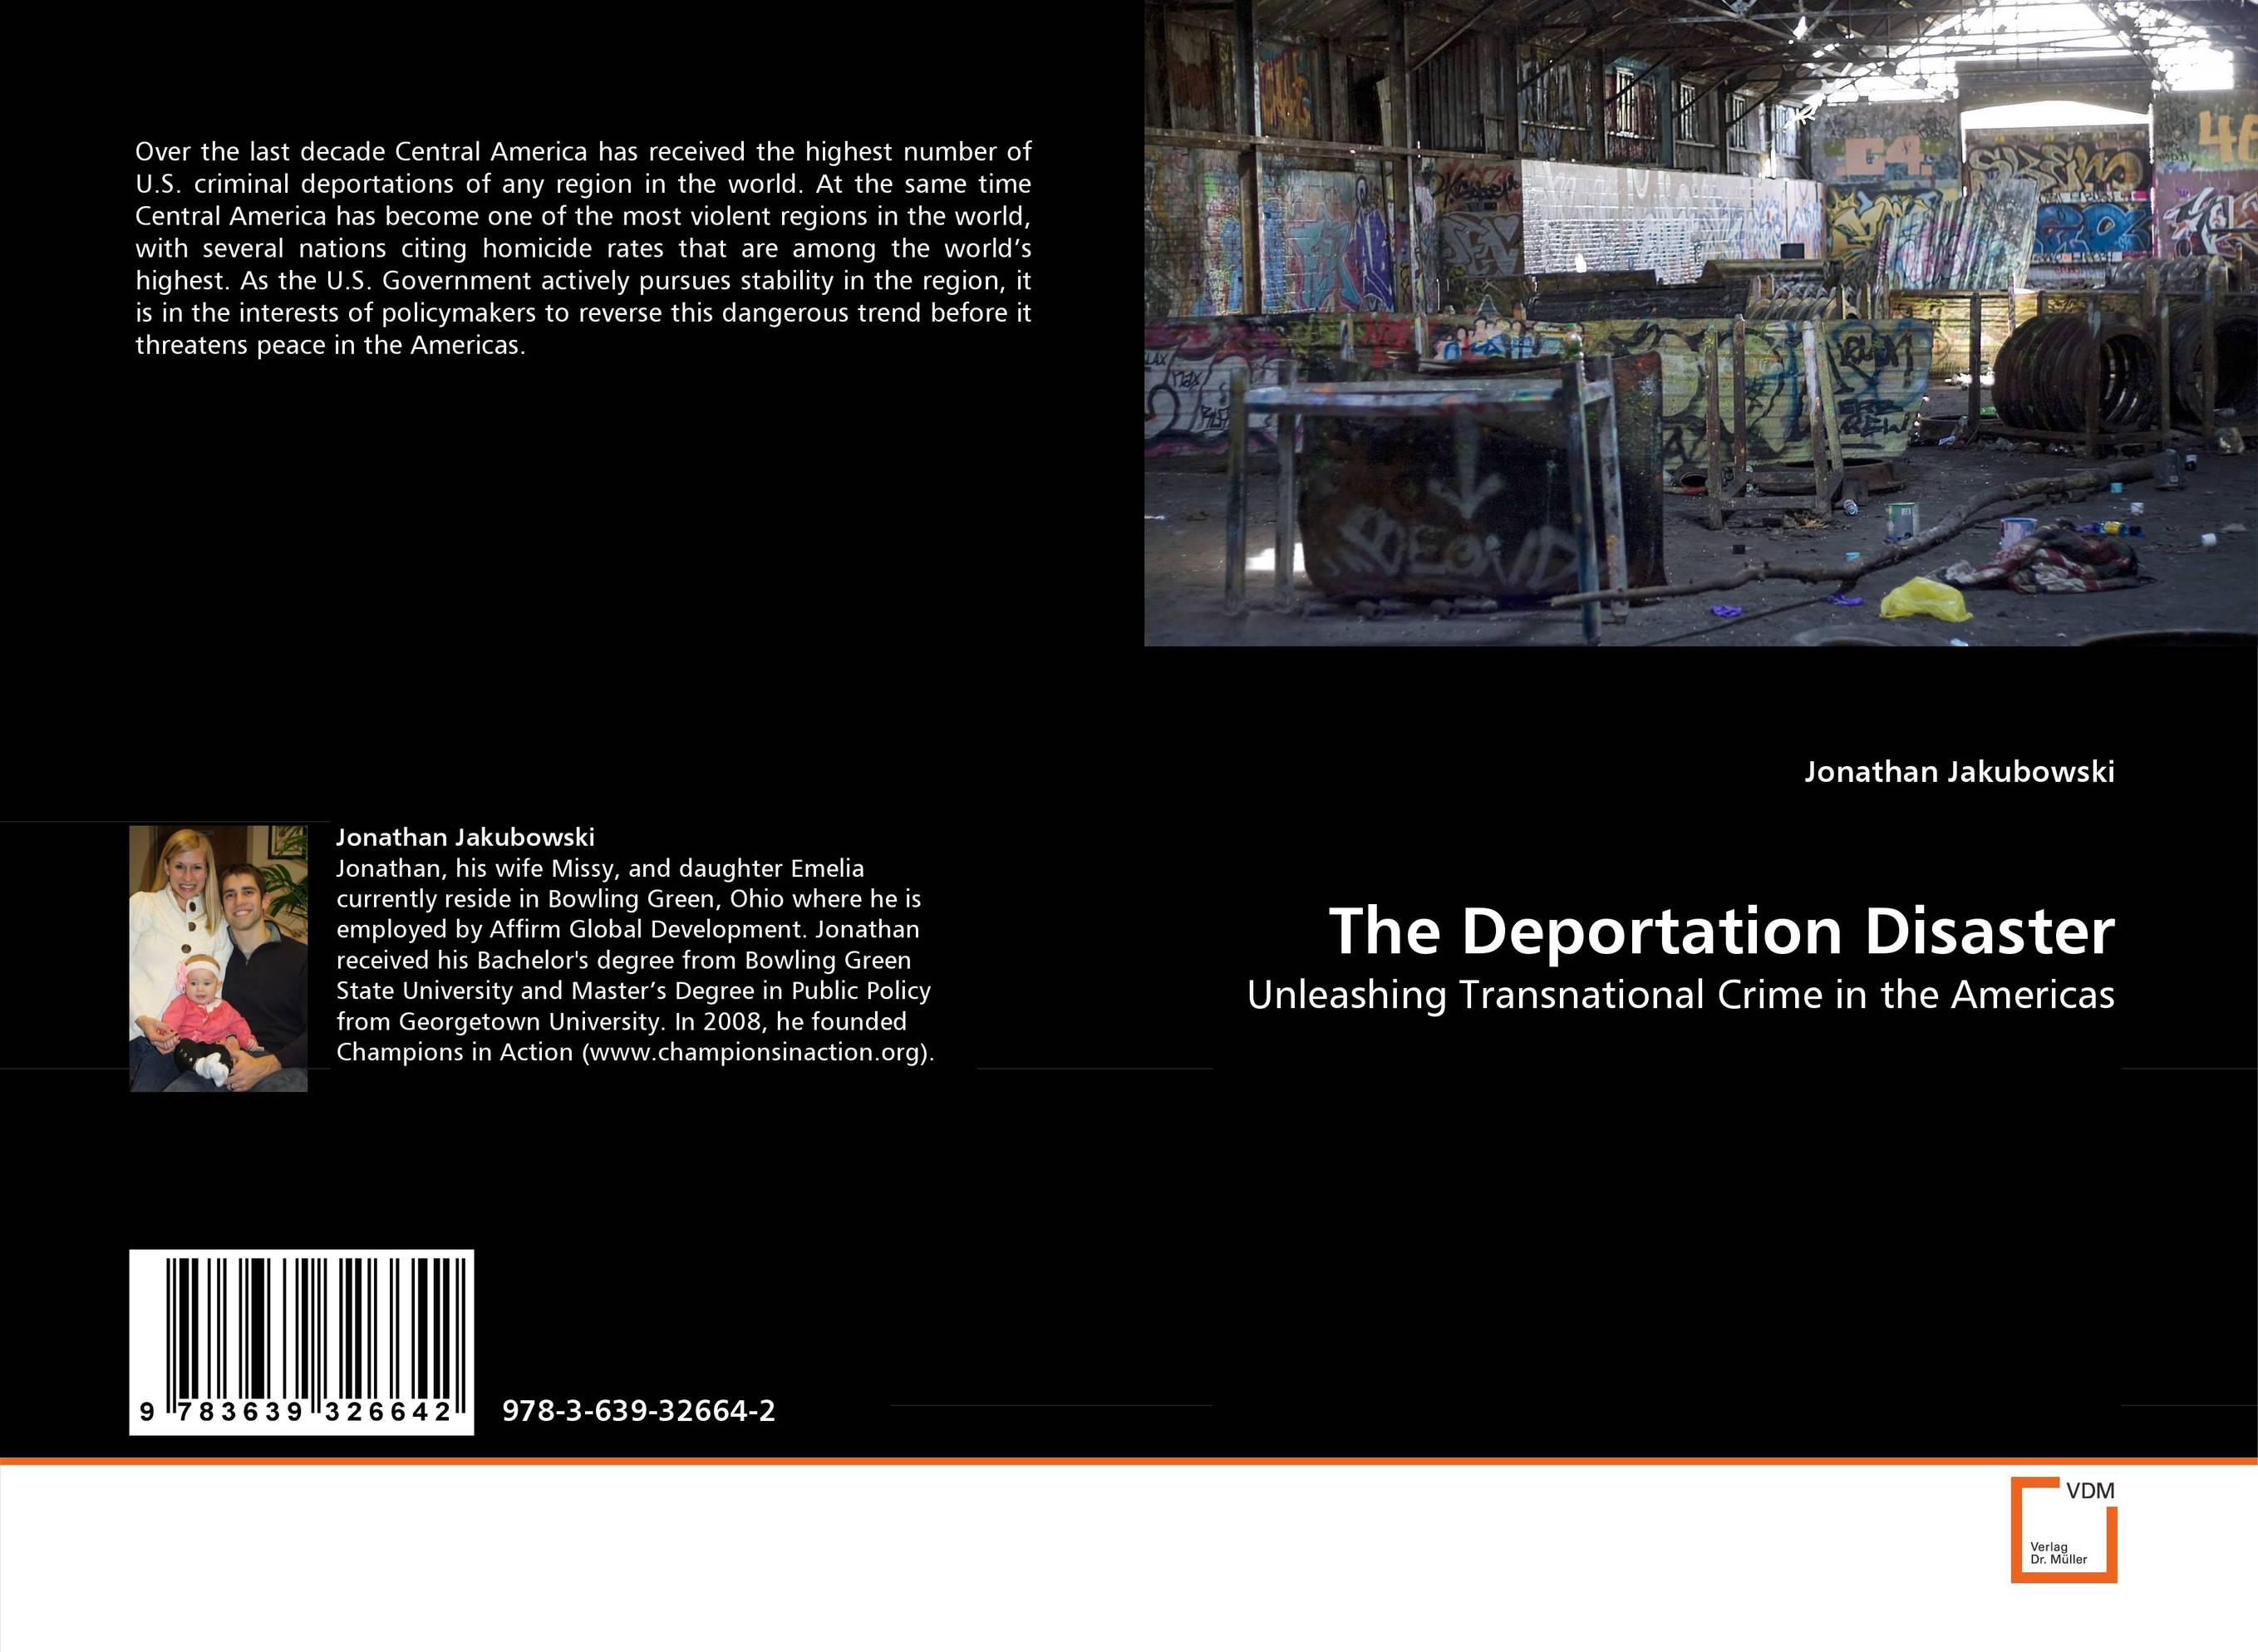 The Deportation Disaster democracy in america nce